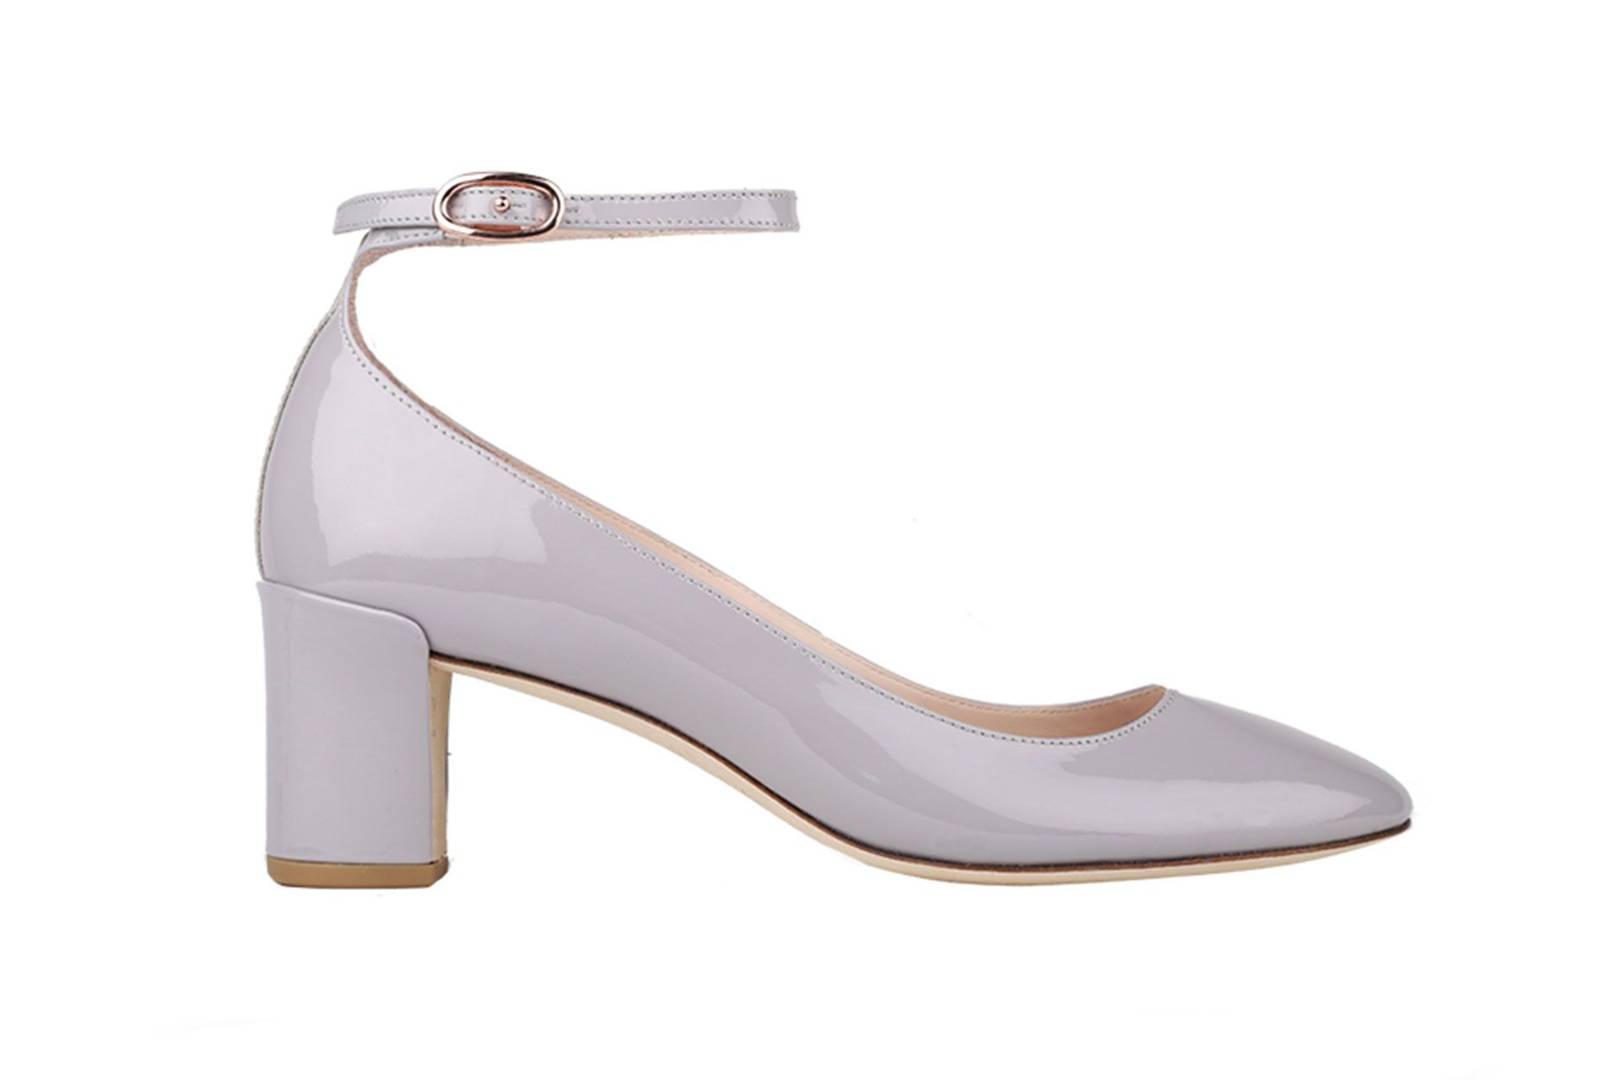 047c03d5fa8 Best Bridesmaid Shoes to Buy For Weddings This Summer